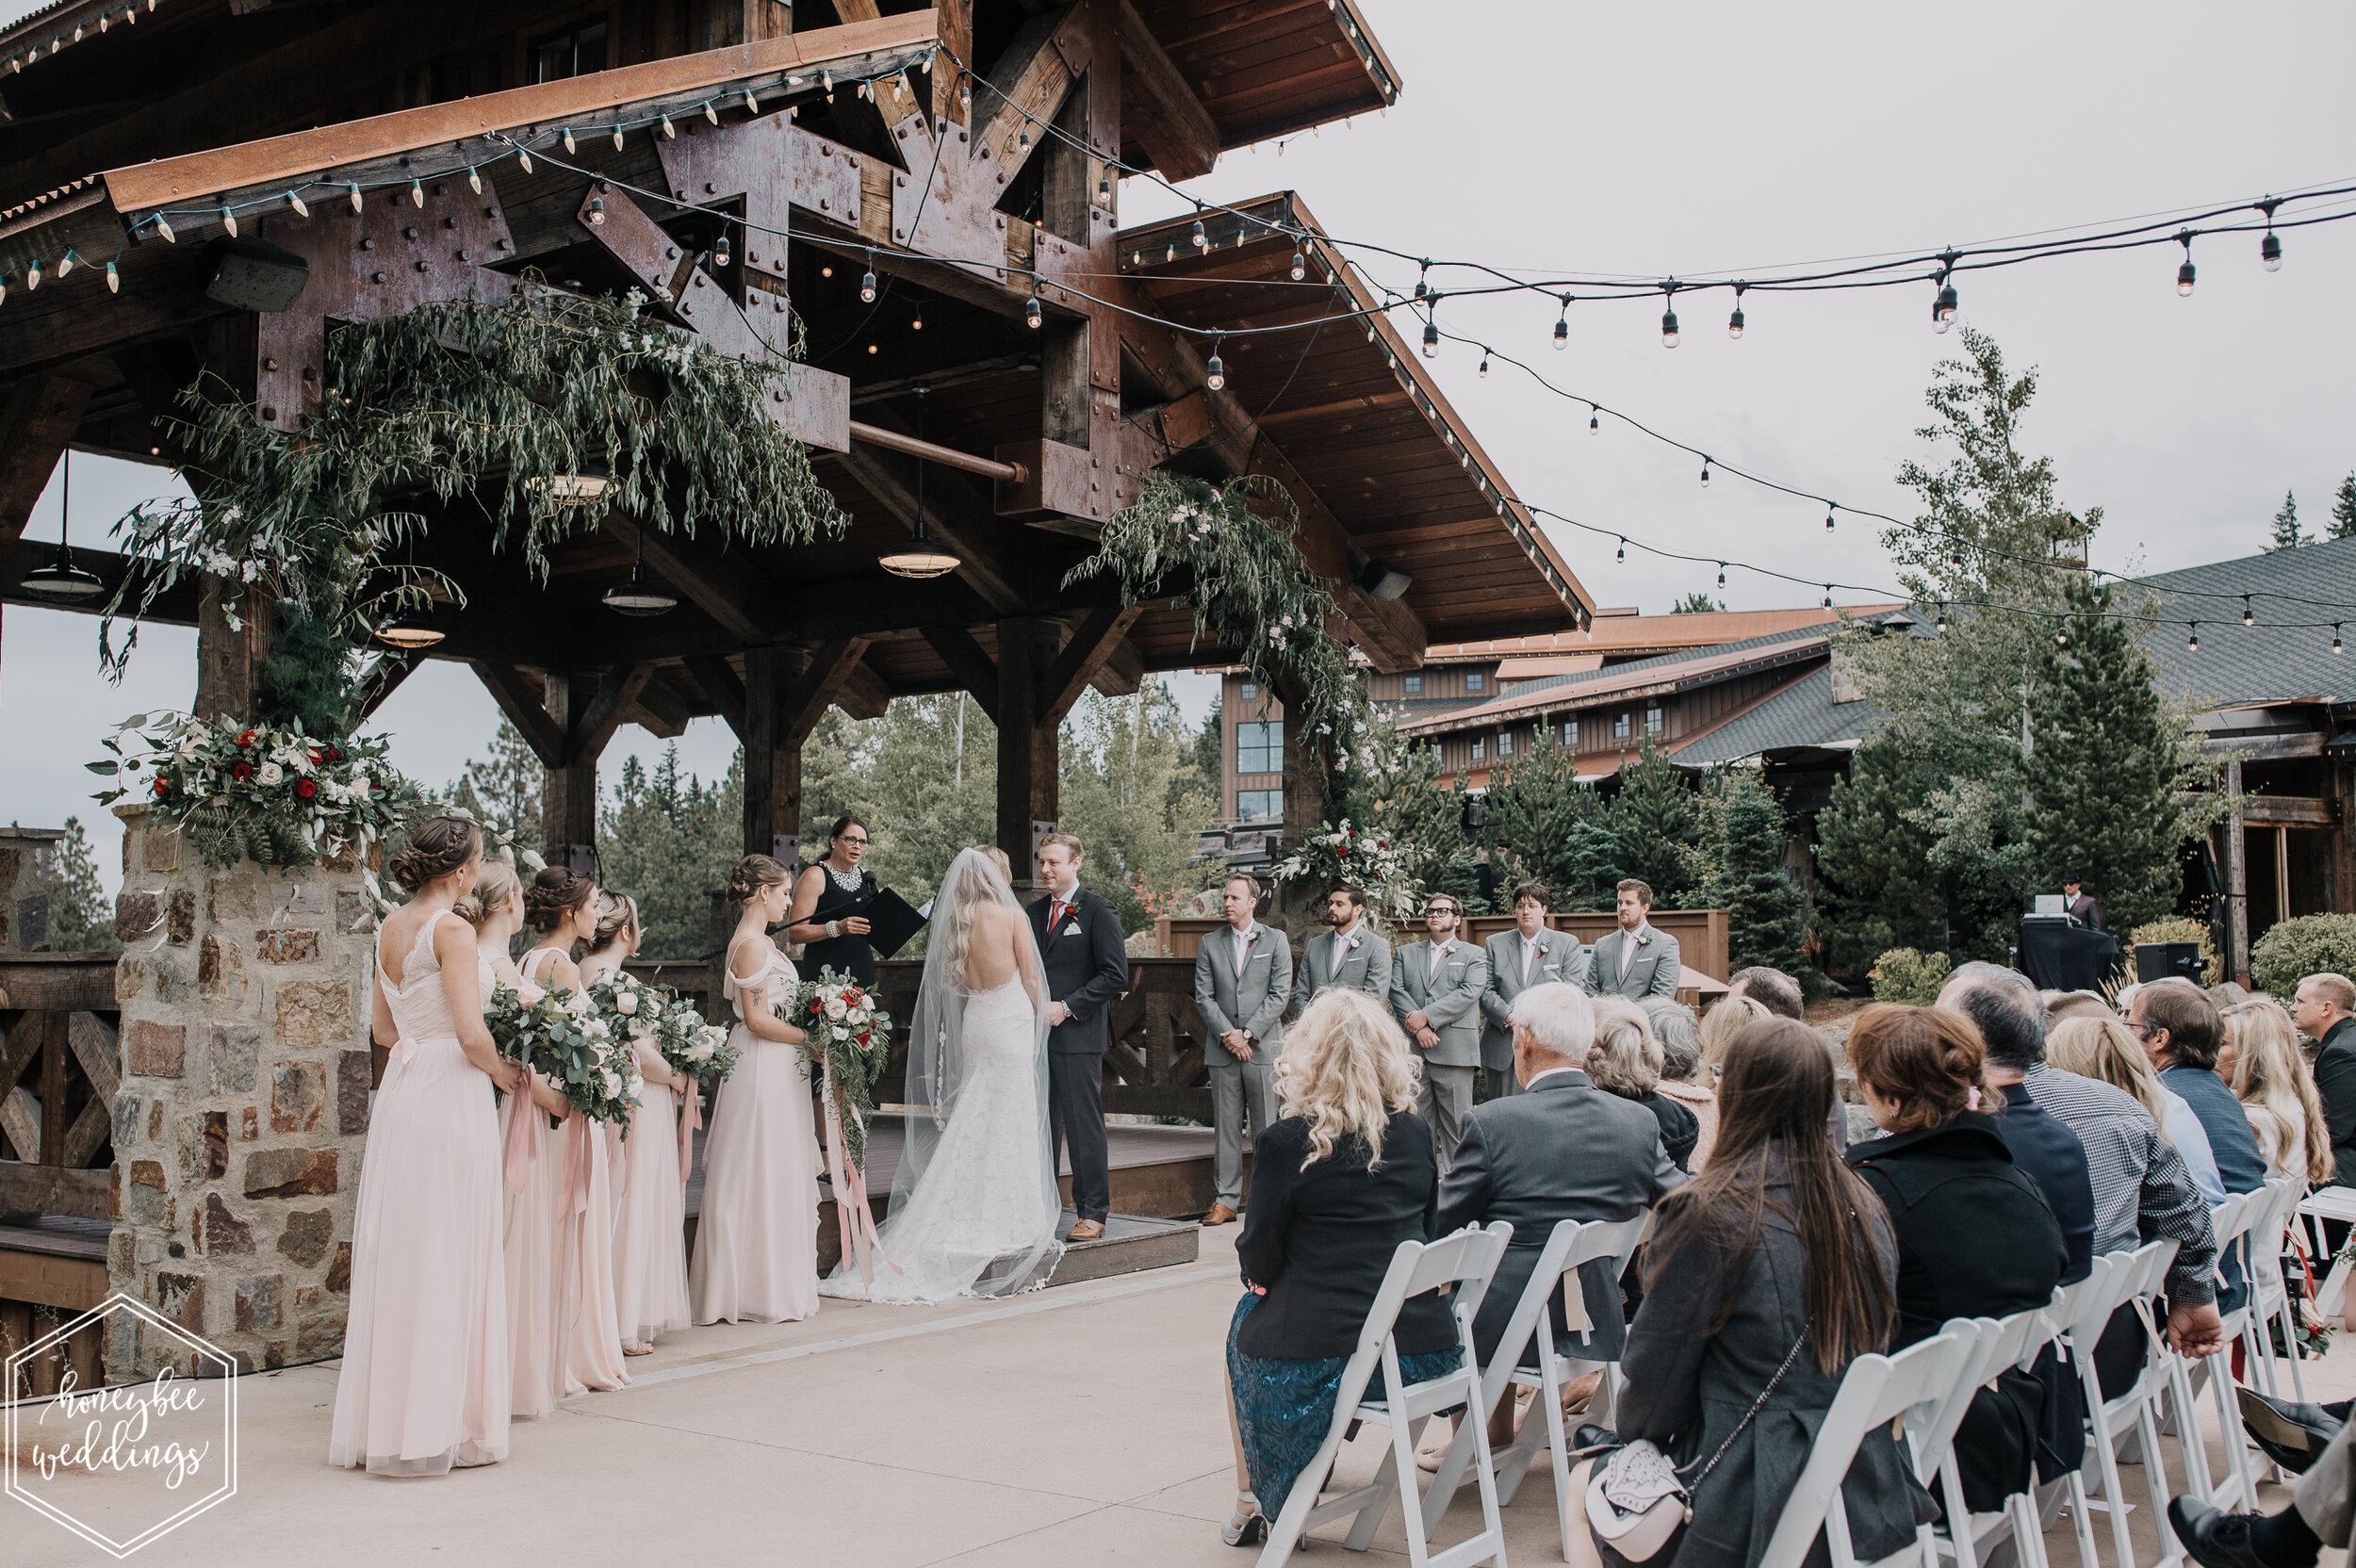 0106Swiftwater Cellars Wedding_Cle Elum Wedding_Montana Wedding Photographer_Kat & Kyle_September 15, 2018-250.jpg